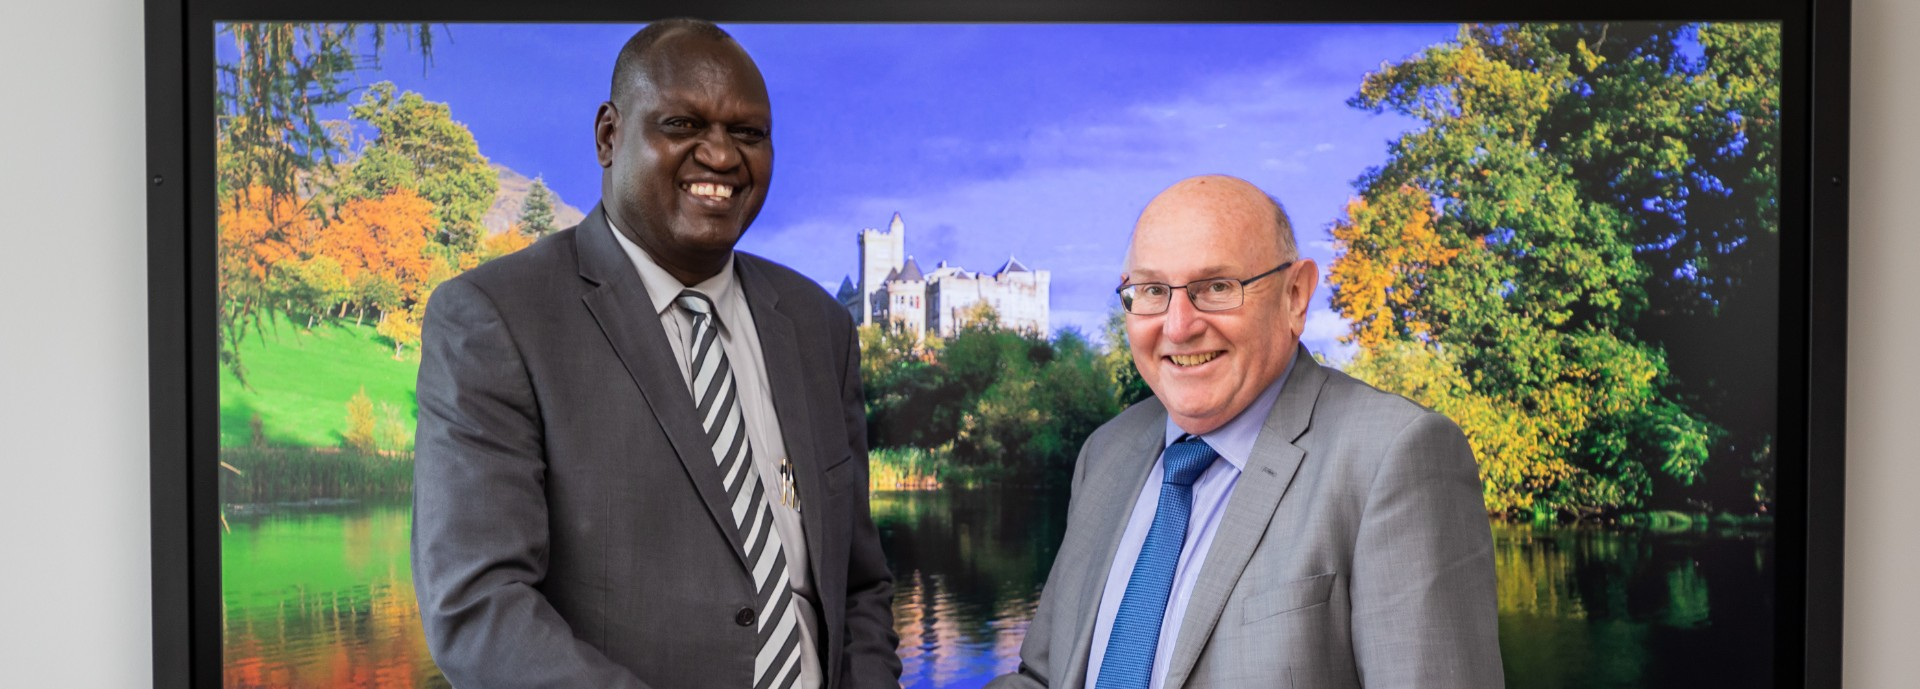 Professor Isaac Sanga Kosgey, Vice Chancellor of Moi University, and Professor Leigh Sparks, Deputy Principal of University of Stirling